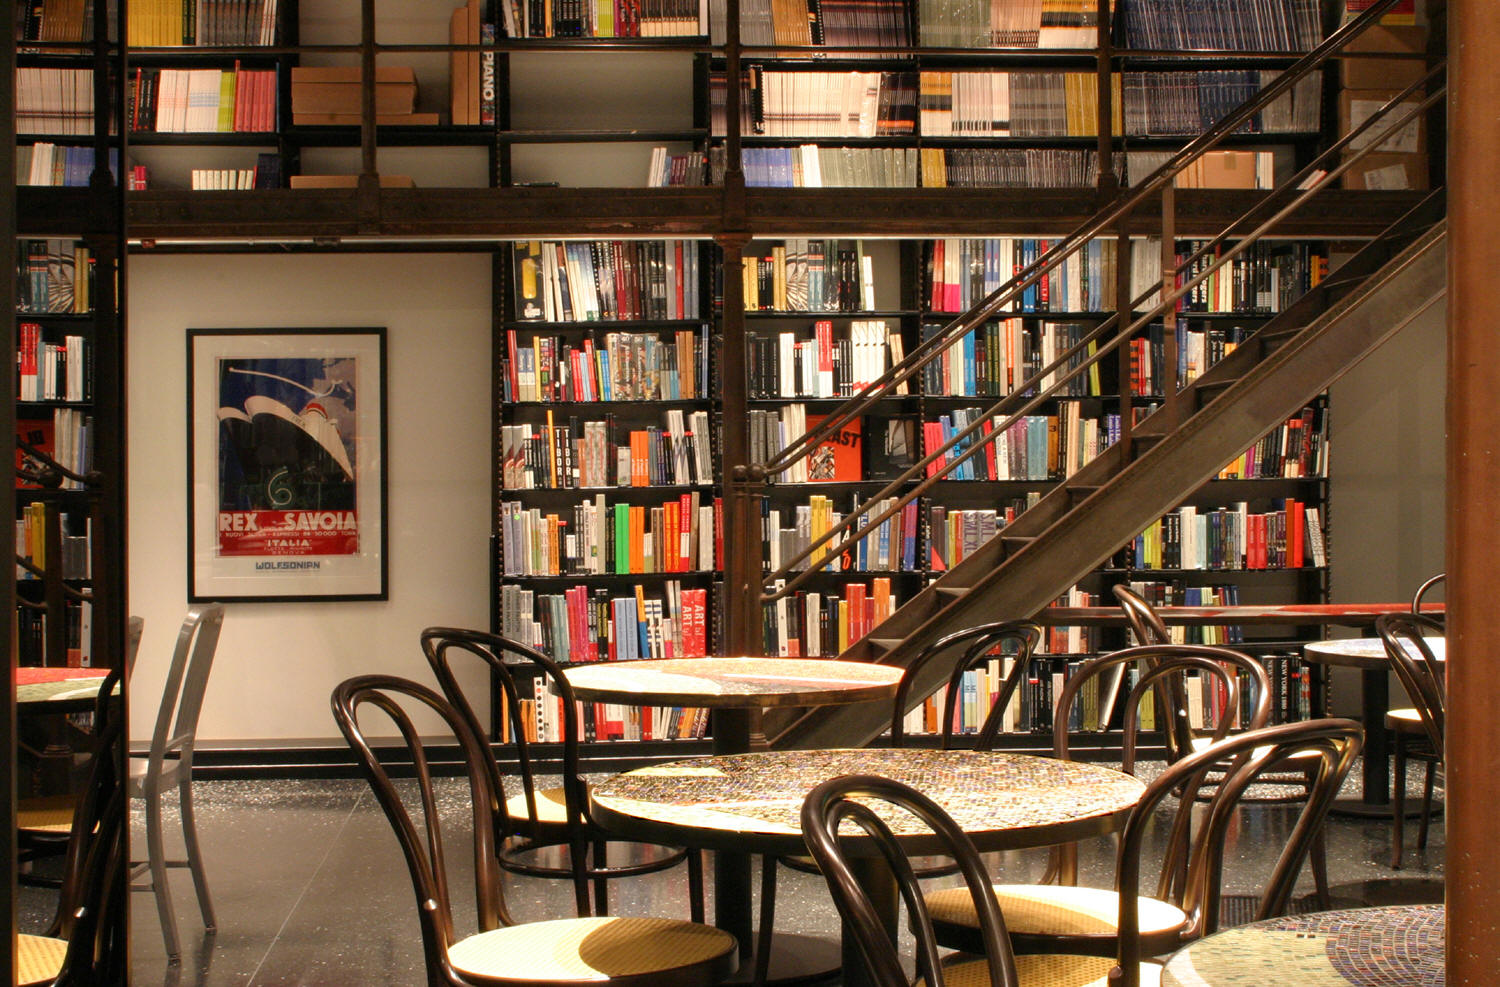 coffee-shop-design-library-style-architecture